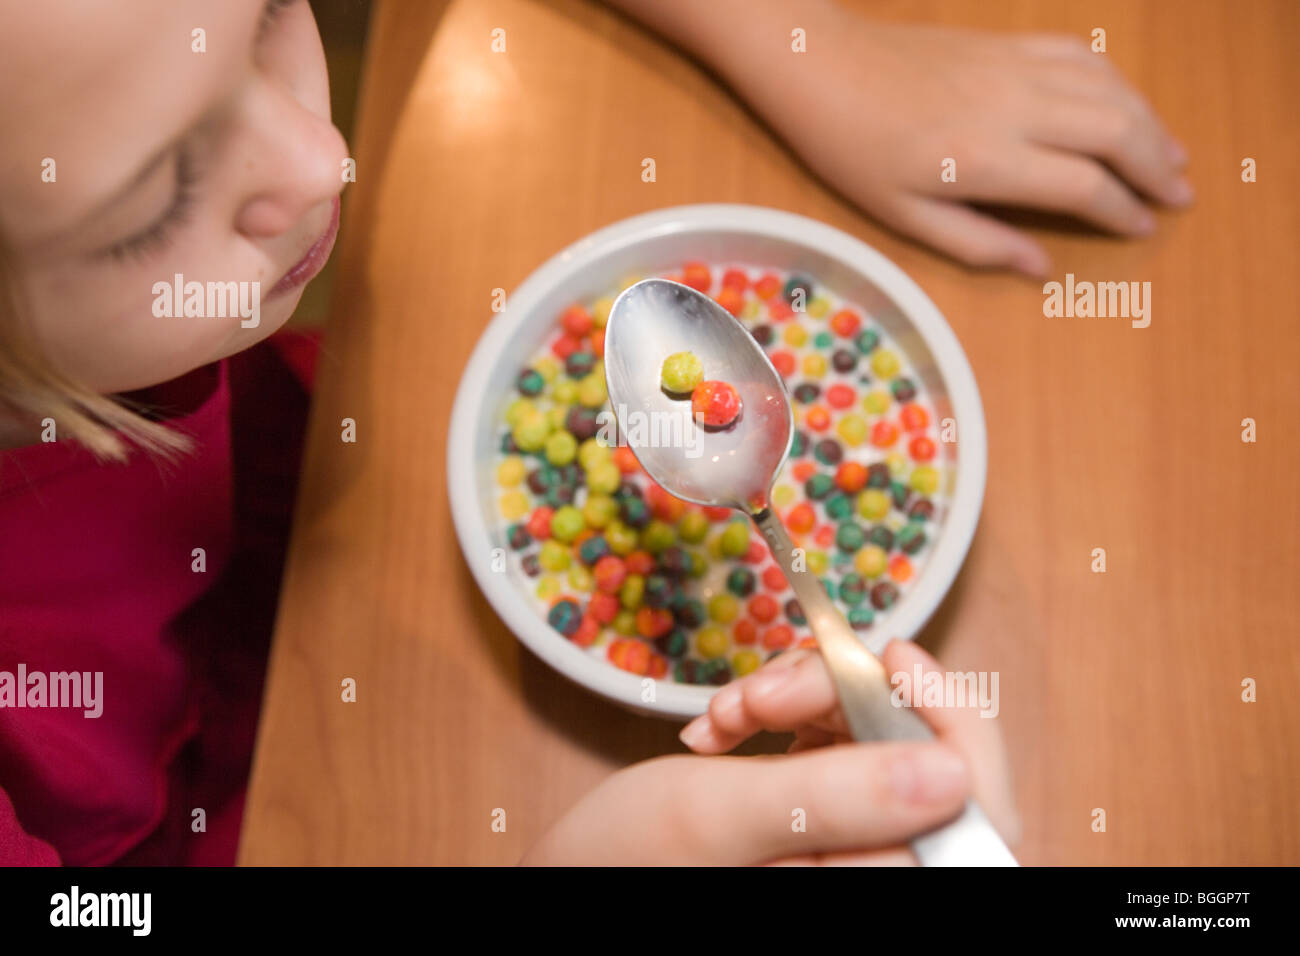 ten year old girl eating sugar cereal at home, high angle view - Stock Image